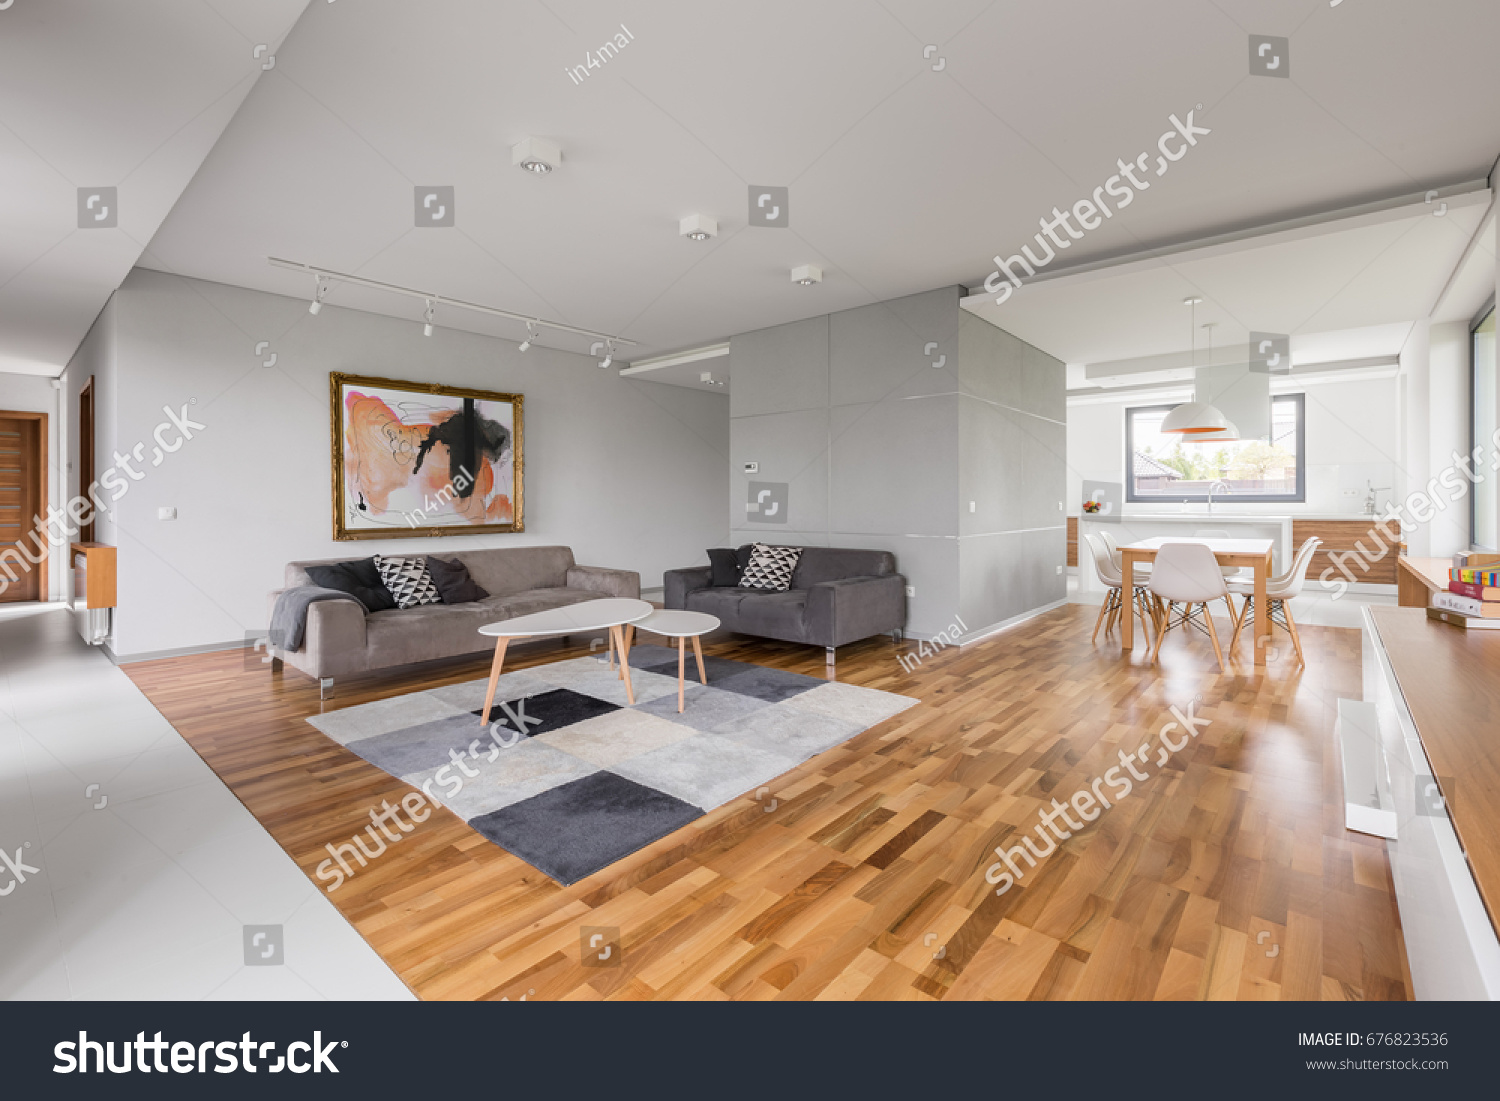 Modern apartment with open living room, kitchenette and dining area #676823536